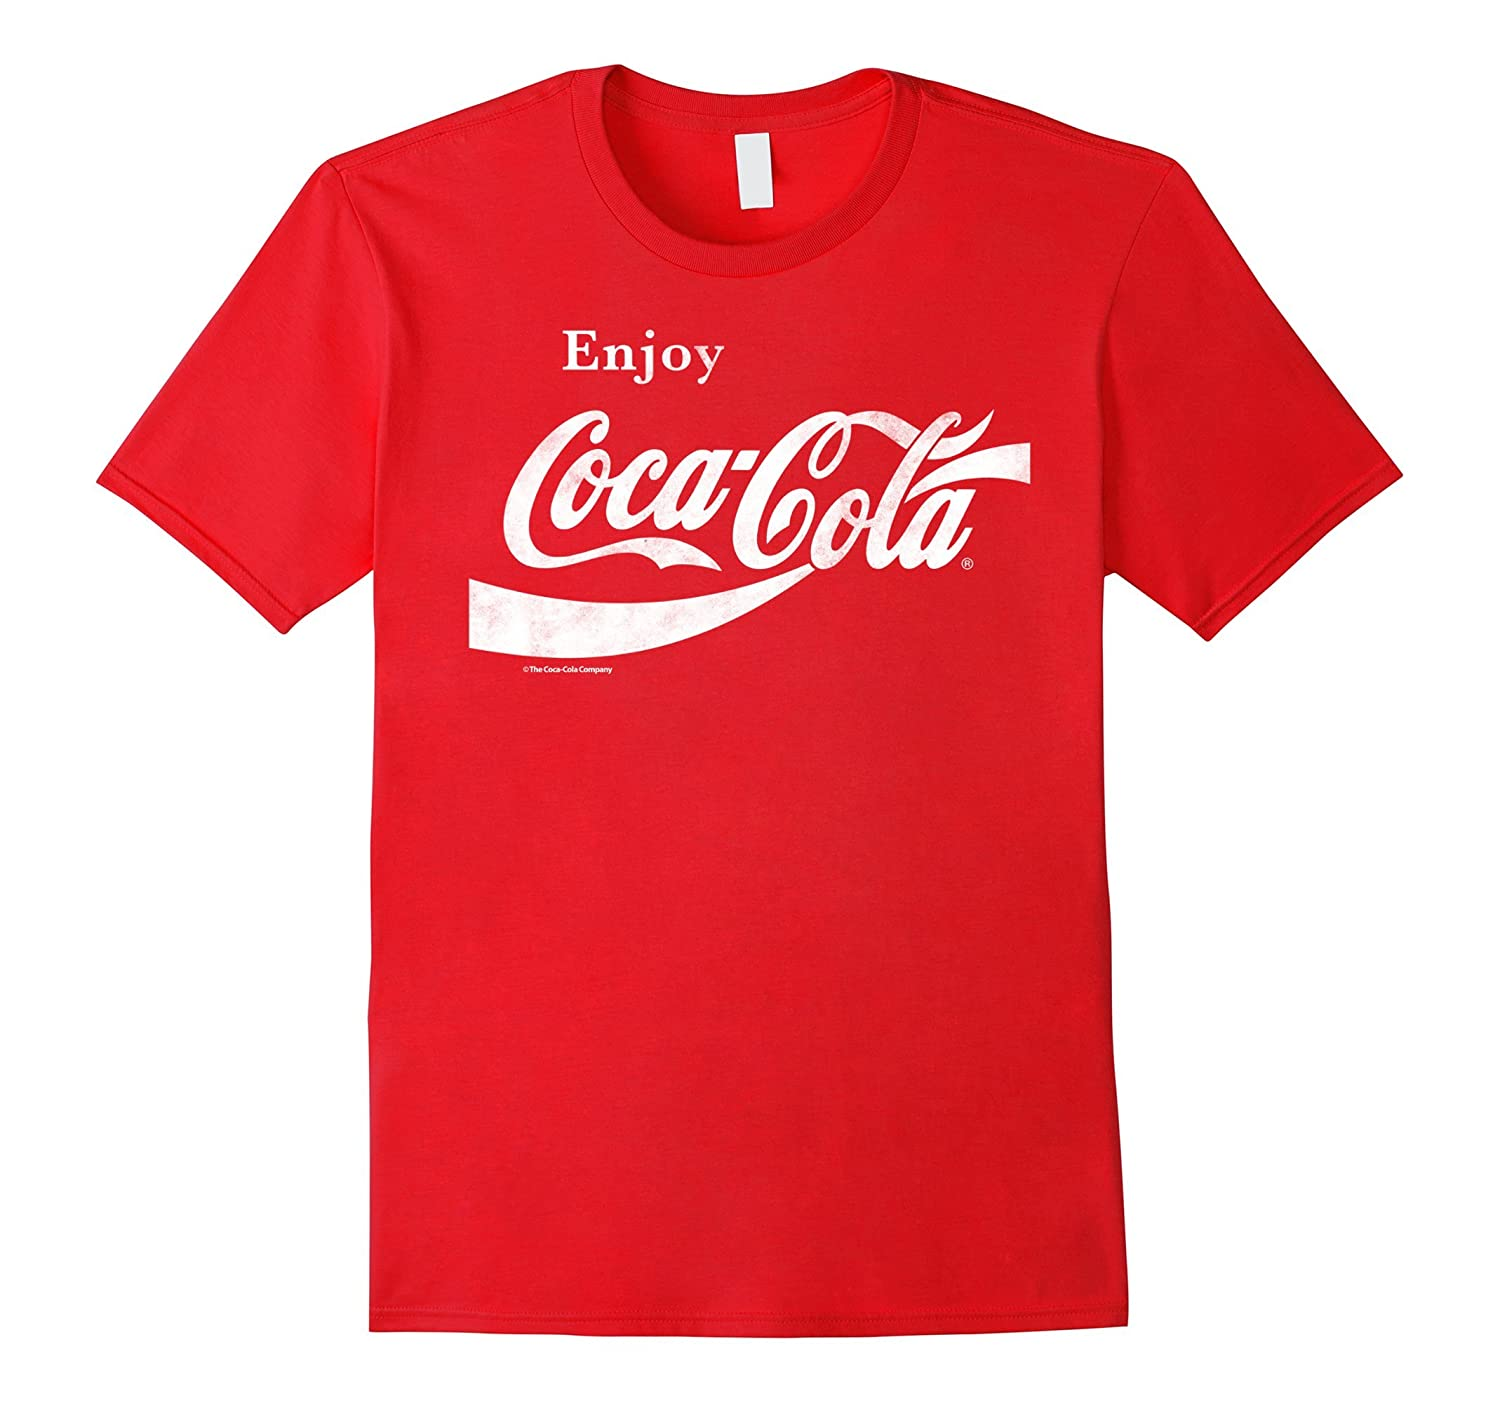 Coca-Cola Retro Vintage Ribbon Enjoy Logo Graphic T-Shirt-T-Shirt